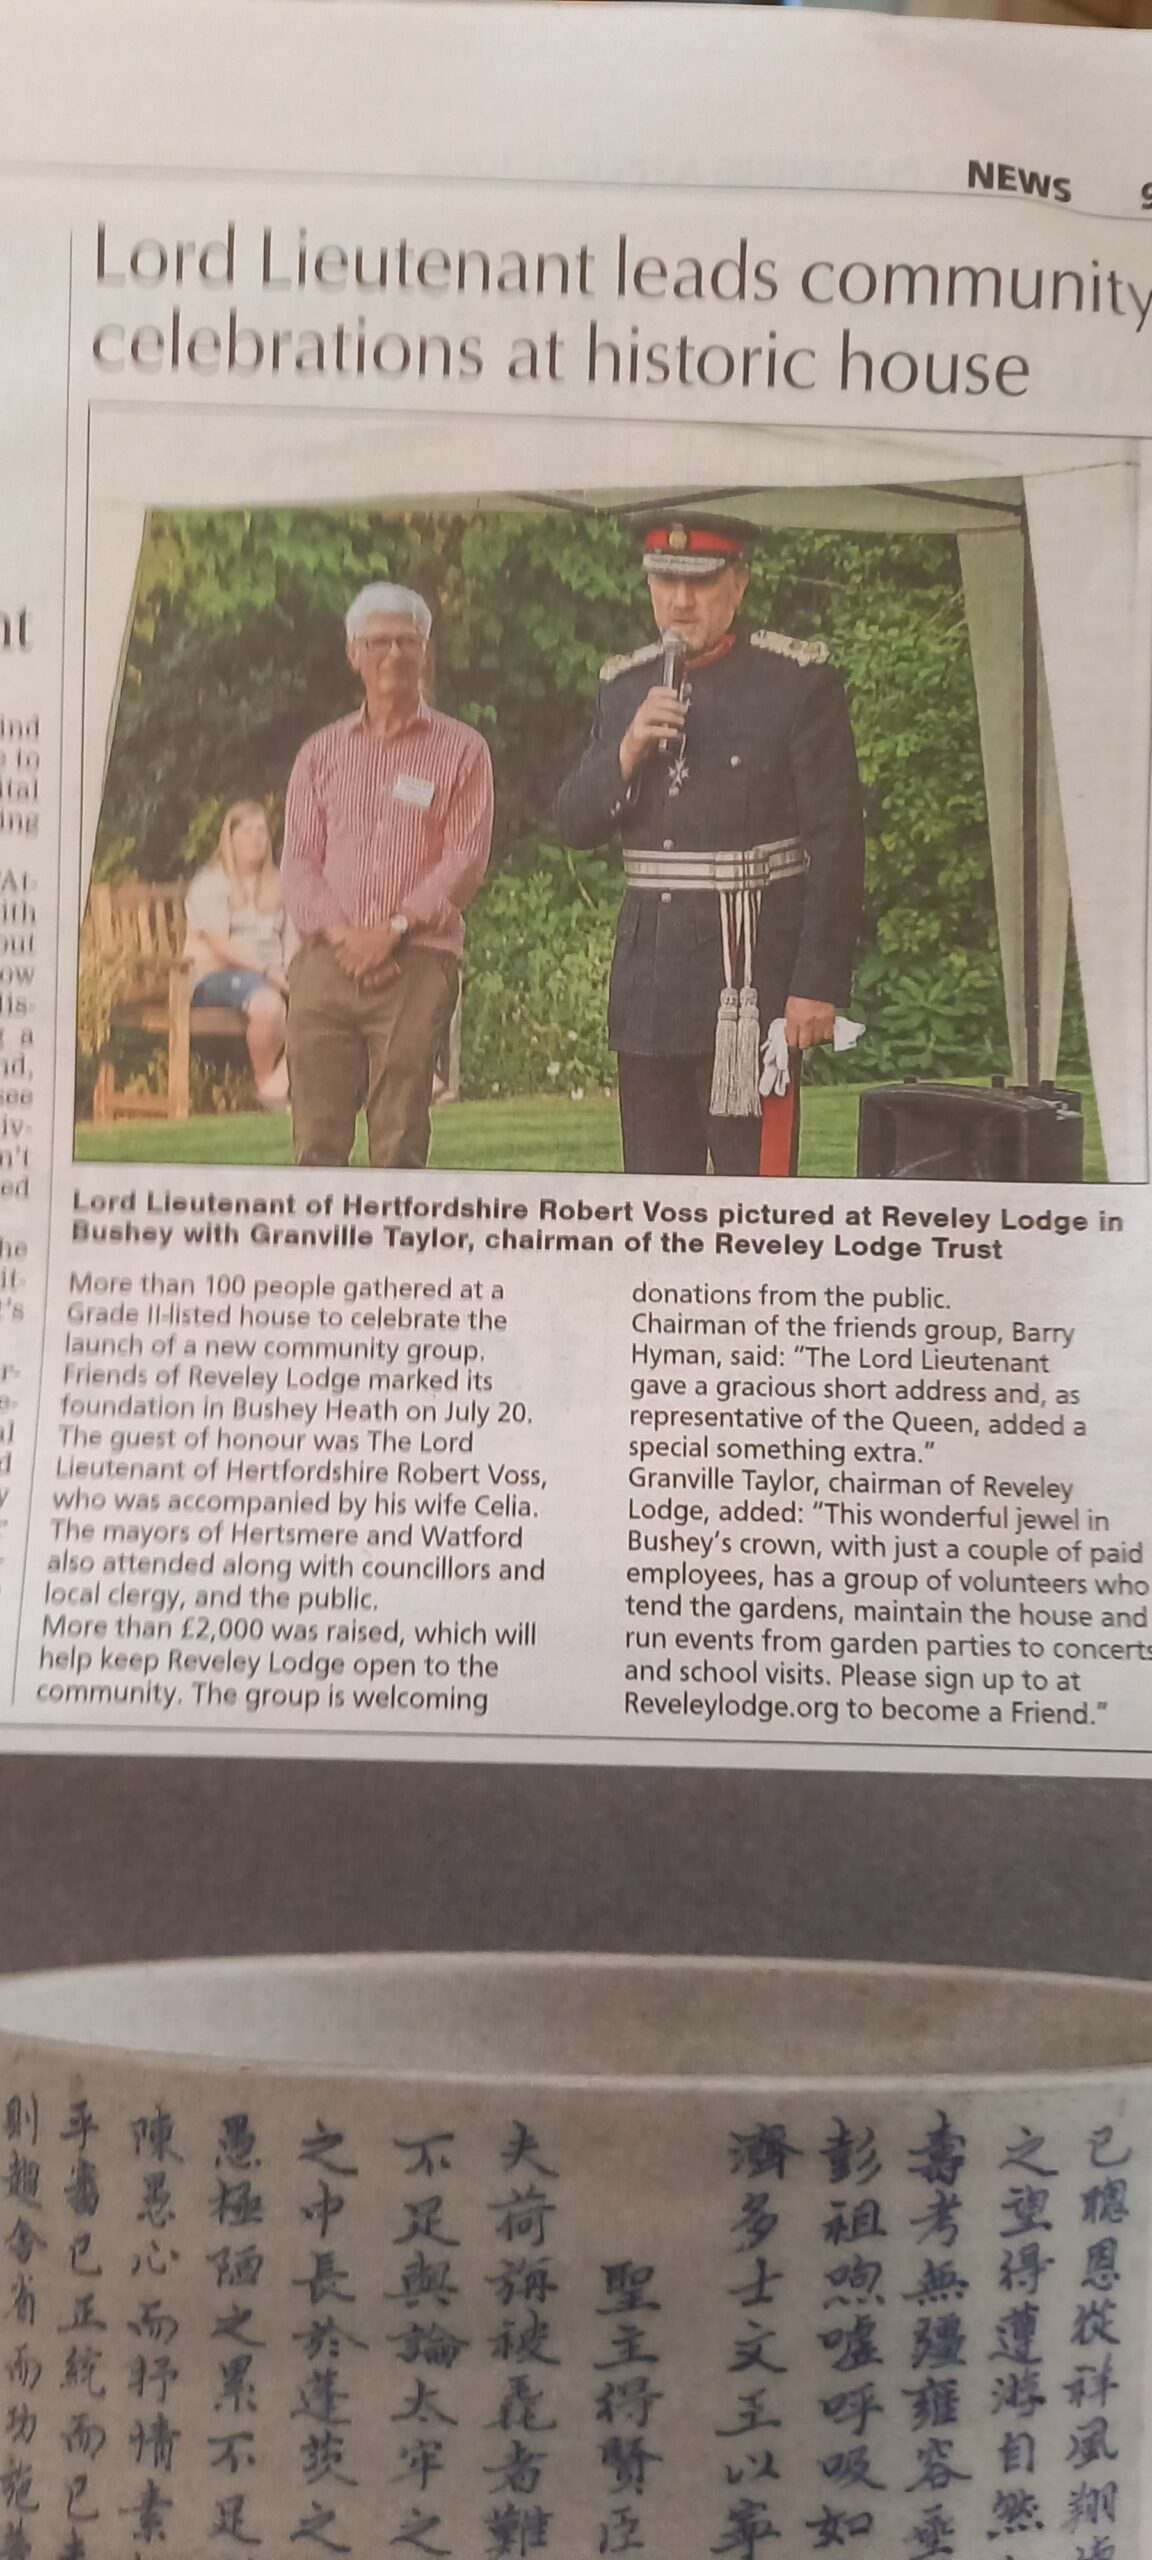 The Lord-Lieutenant Leads Community Celebrations at Reveley Lodge